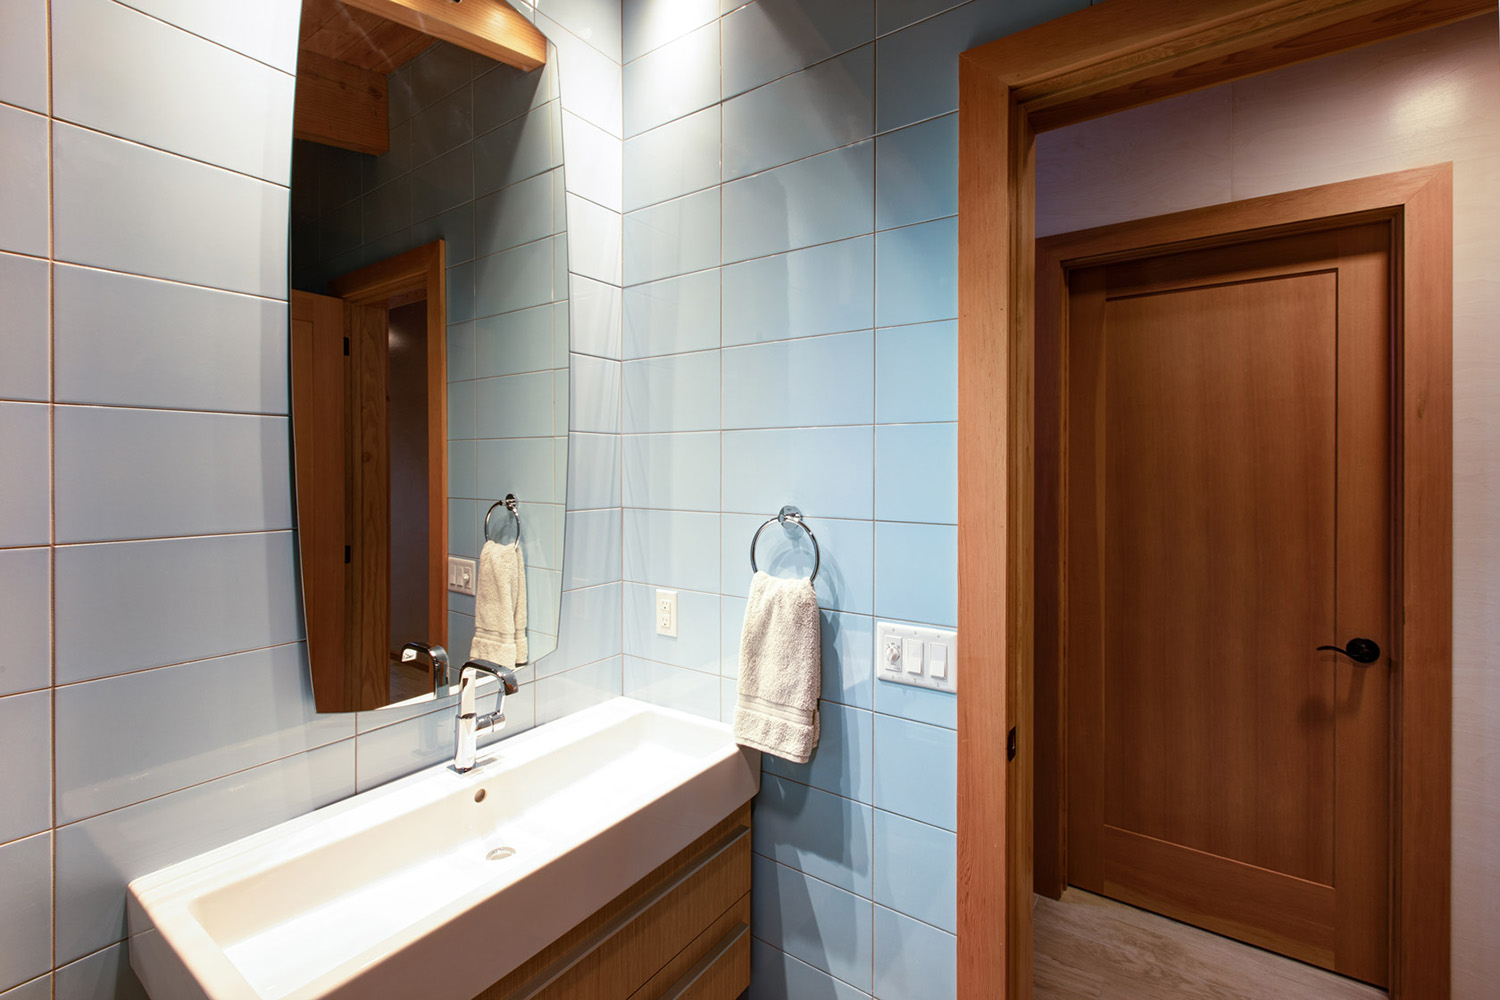 Bathroom with light-blue subway tile, Douglas fir door trim, and cantilever vanity with Basin sink